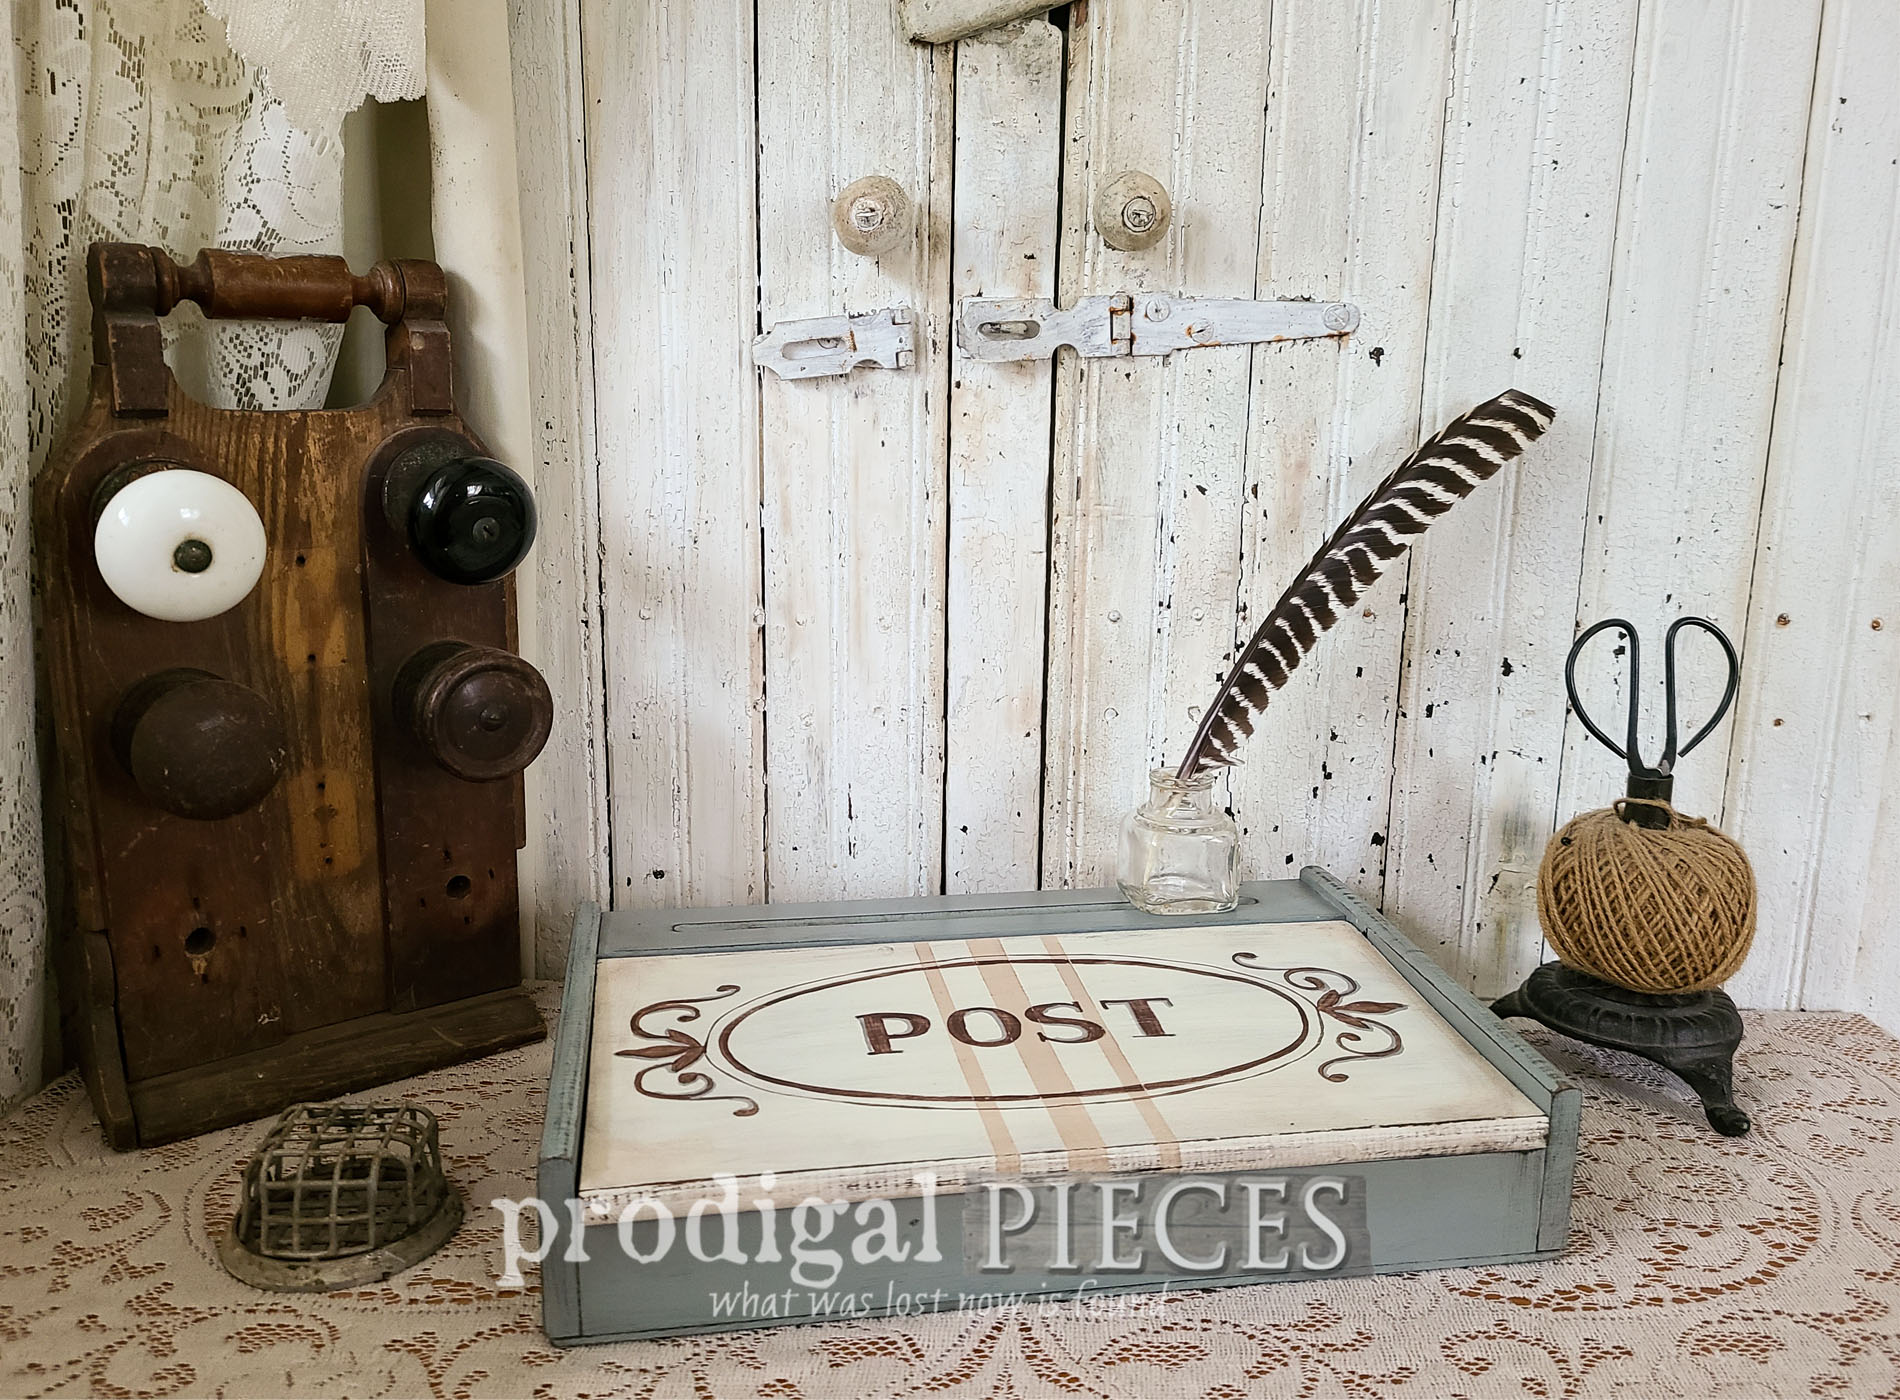 Featured Vintage Writing Box Given Antique Style by Larissa of Prodigal Pieces | prodigalpieces.com #prodigalpieces #diy #vintage #home #homedecor